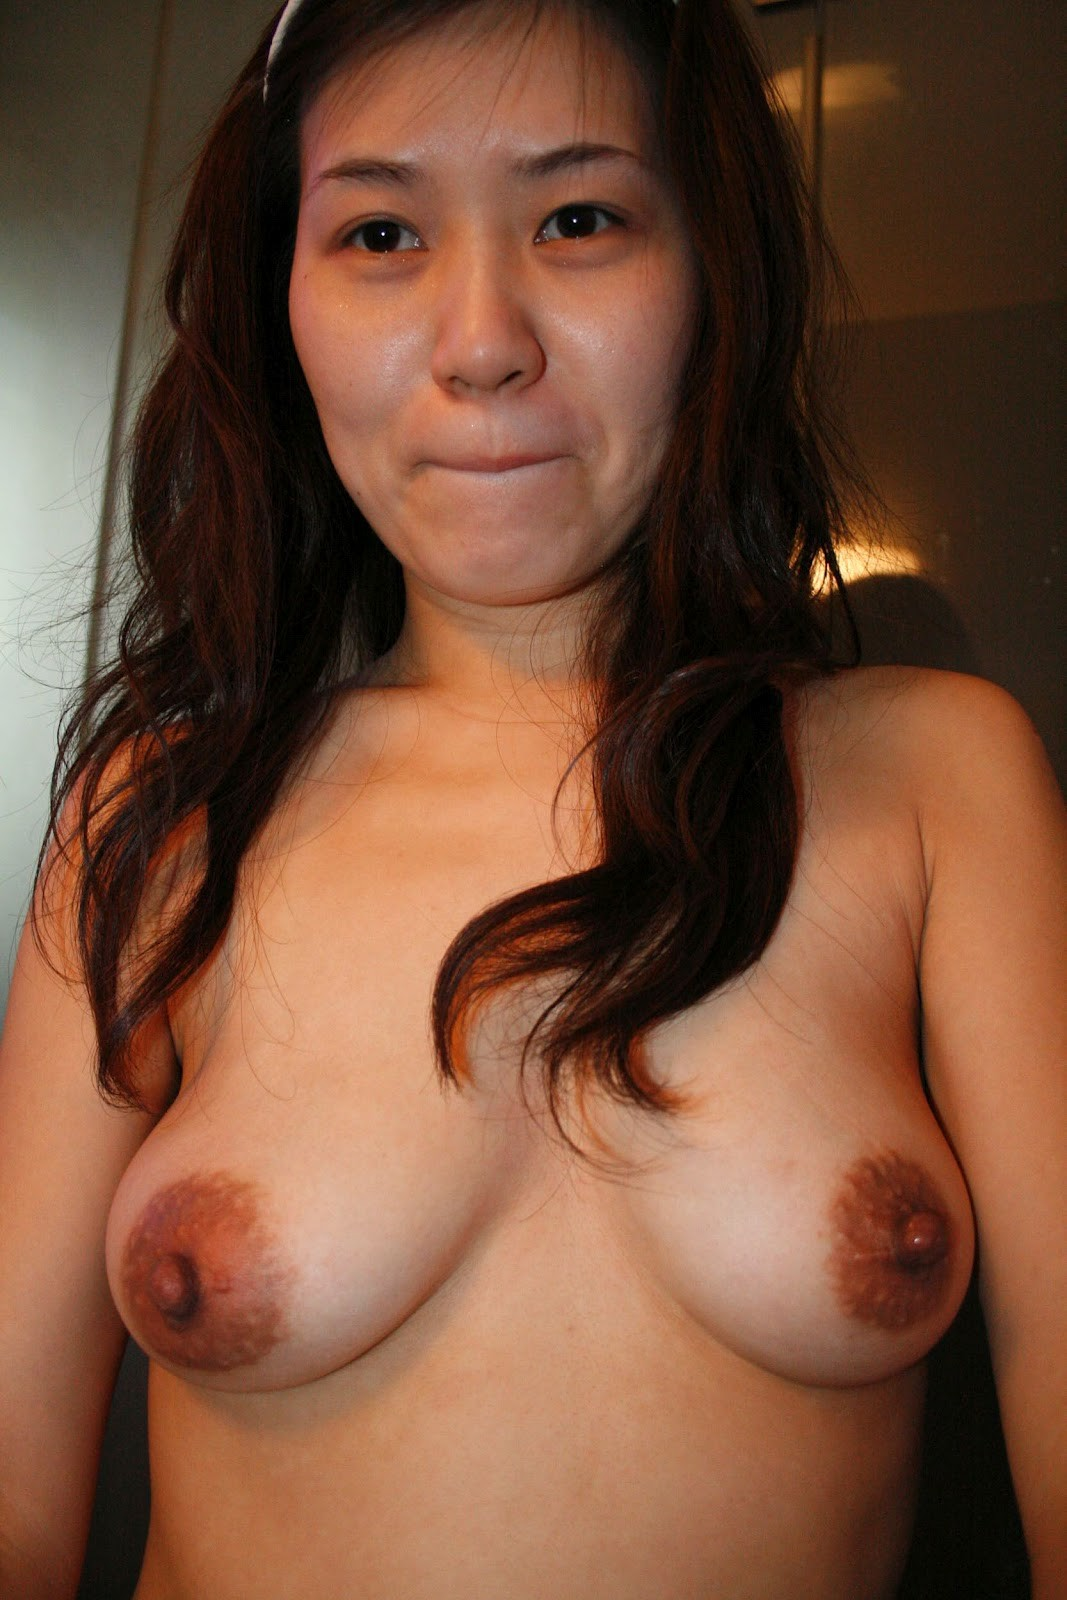 indonesian-wife-tits-elizabeth-banks-naked-movies